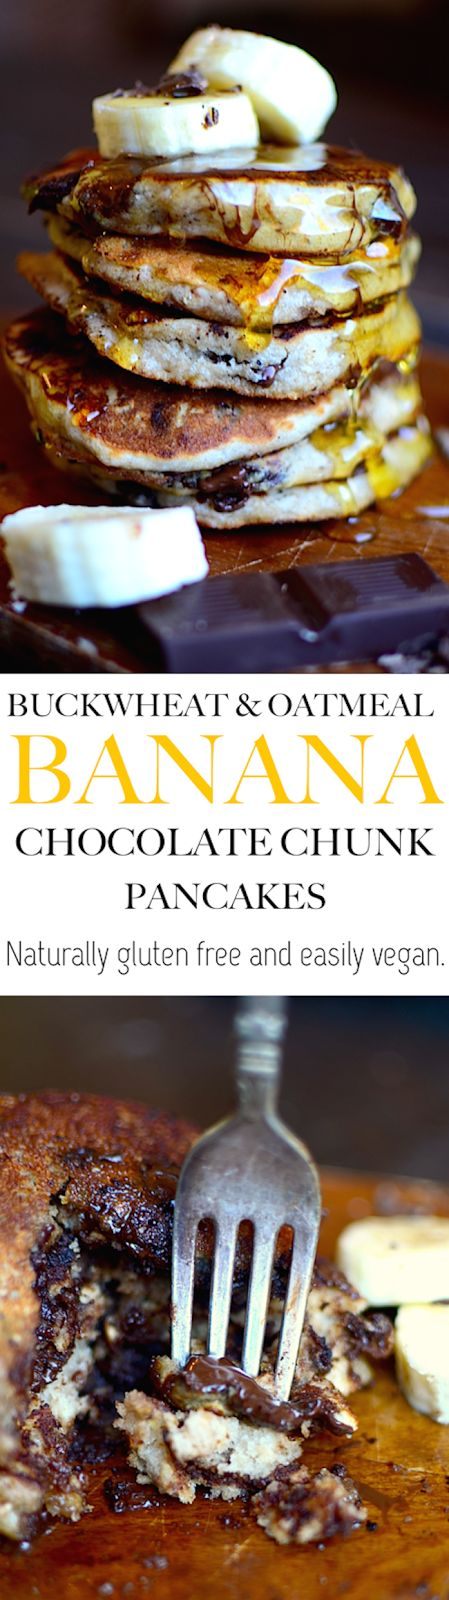 These pancakes were AMAZING! So fluffy and the buckwheat added a great nutty flavor! Plus they're gluten free, whole grain, and can be vegan!